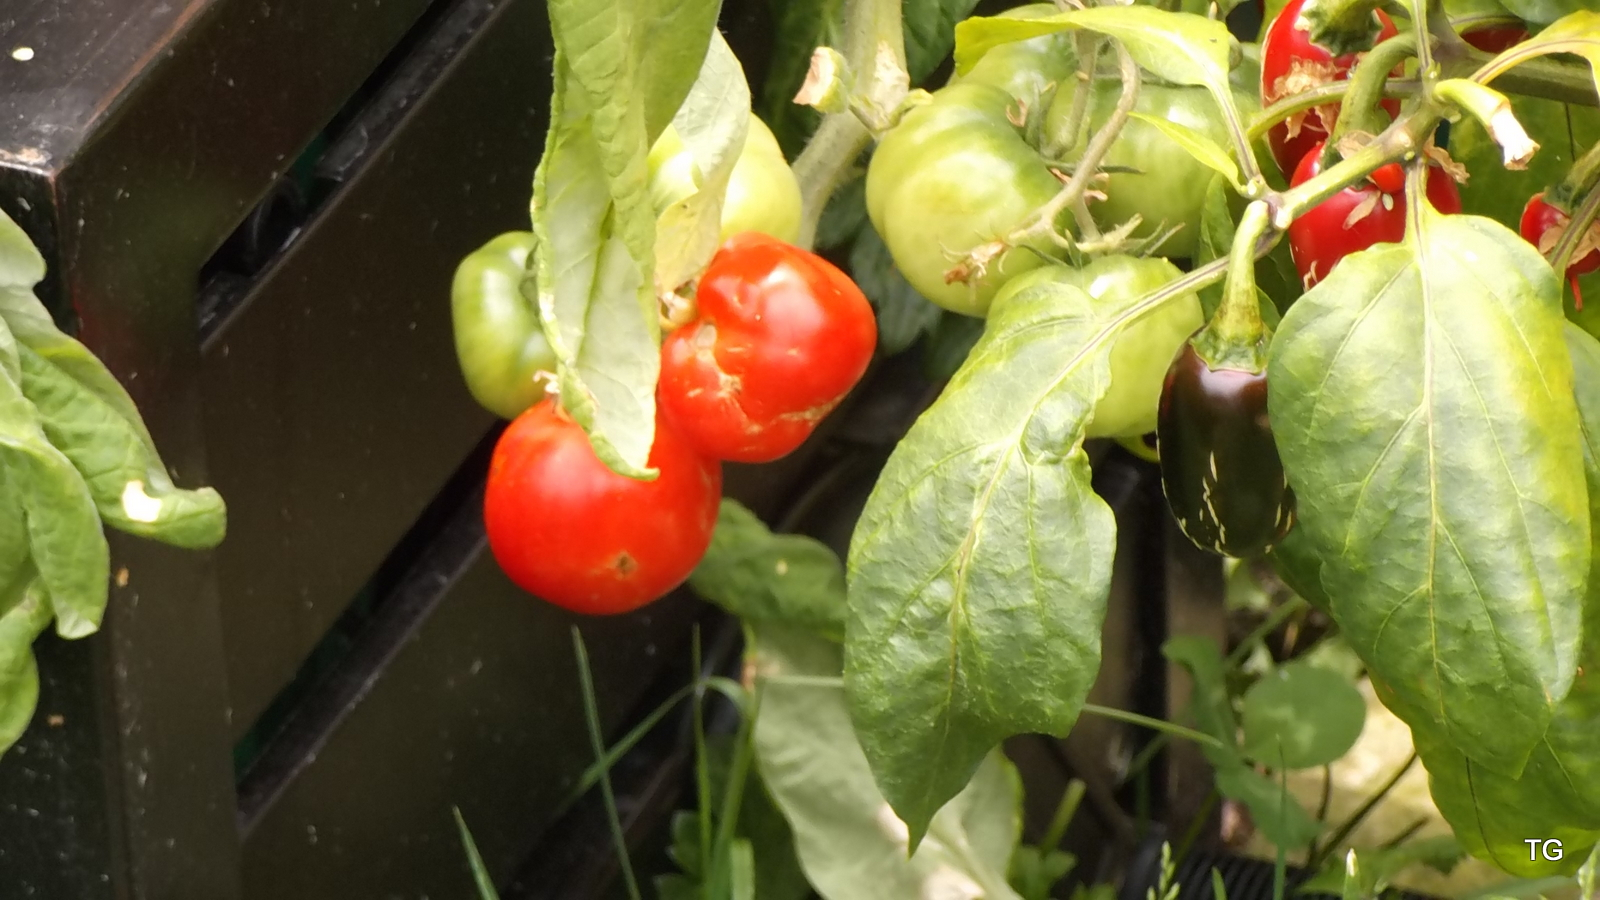 Less than a week ago, these tomatoes and peppers had been growing in our basement.